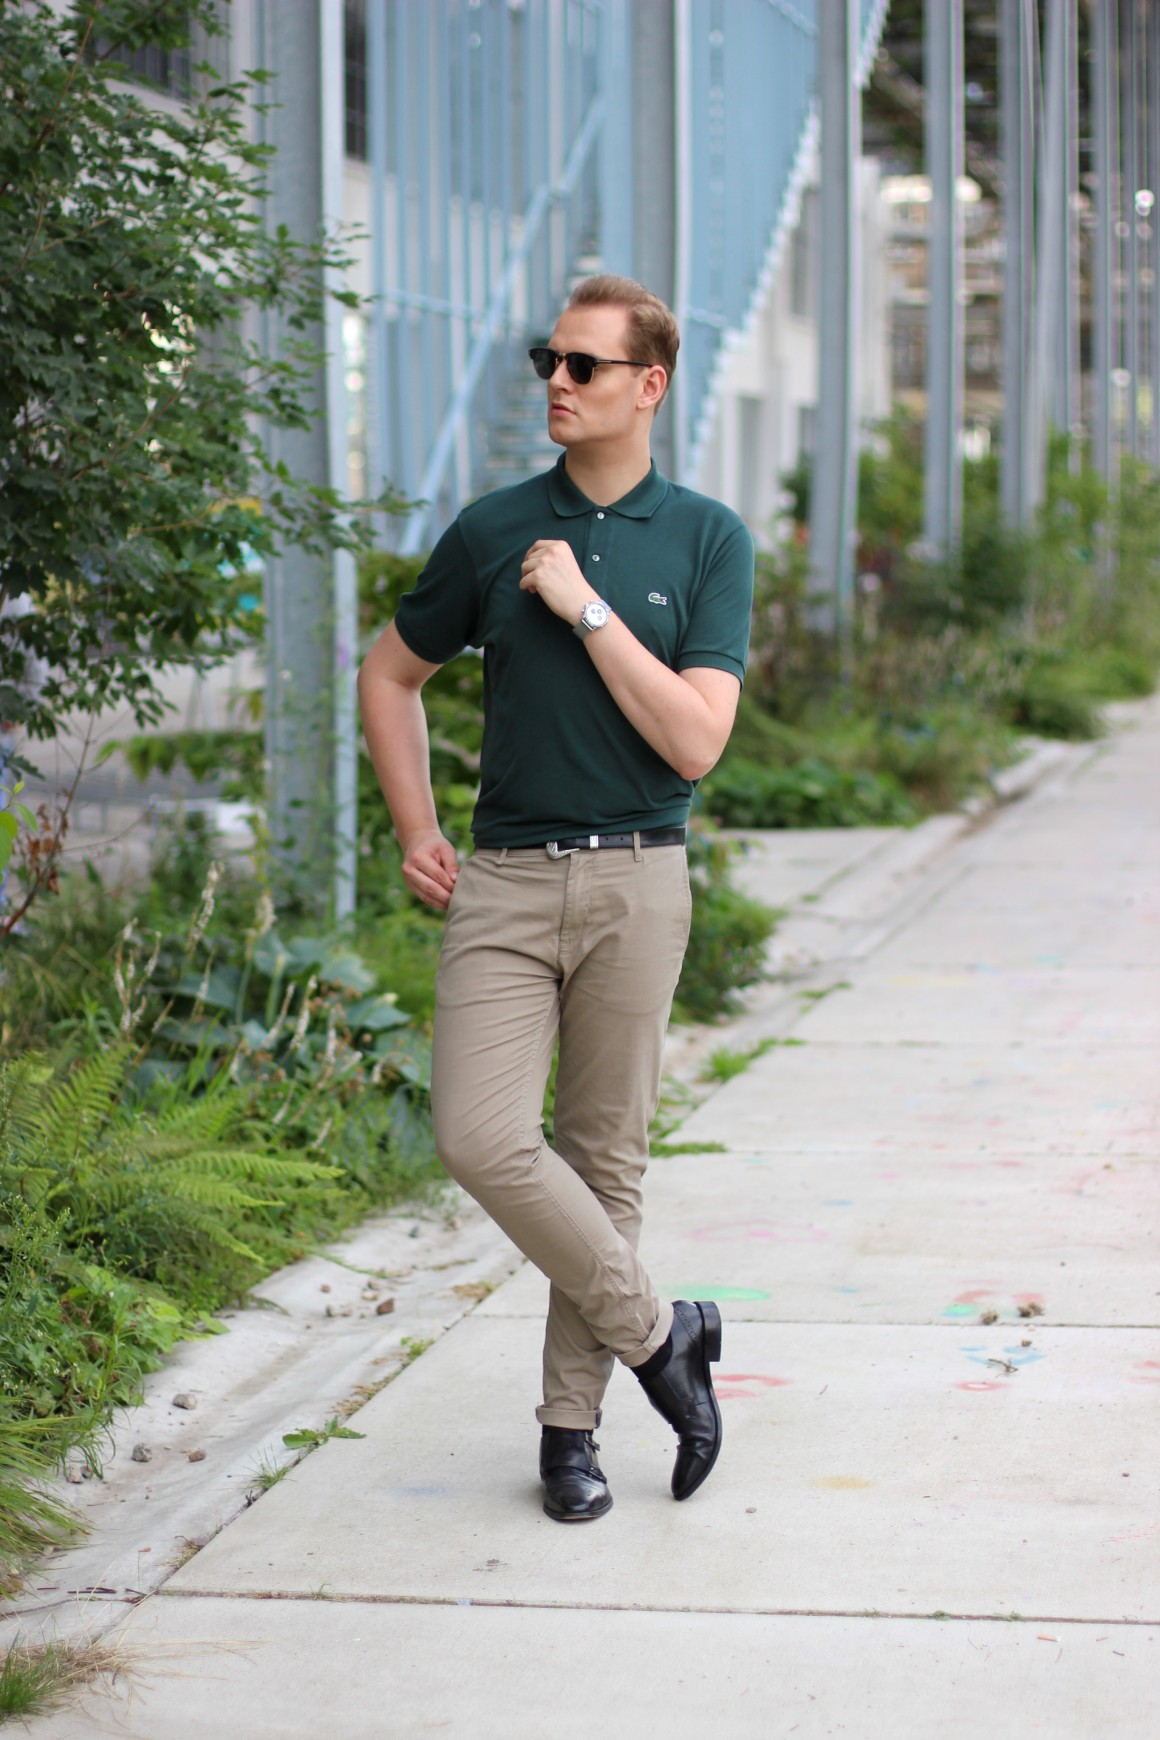 Mister Green JustKVN menswear and lifestyle blog-3